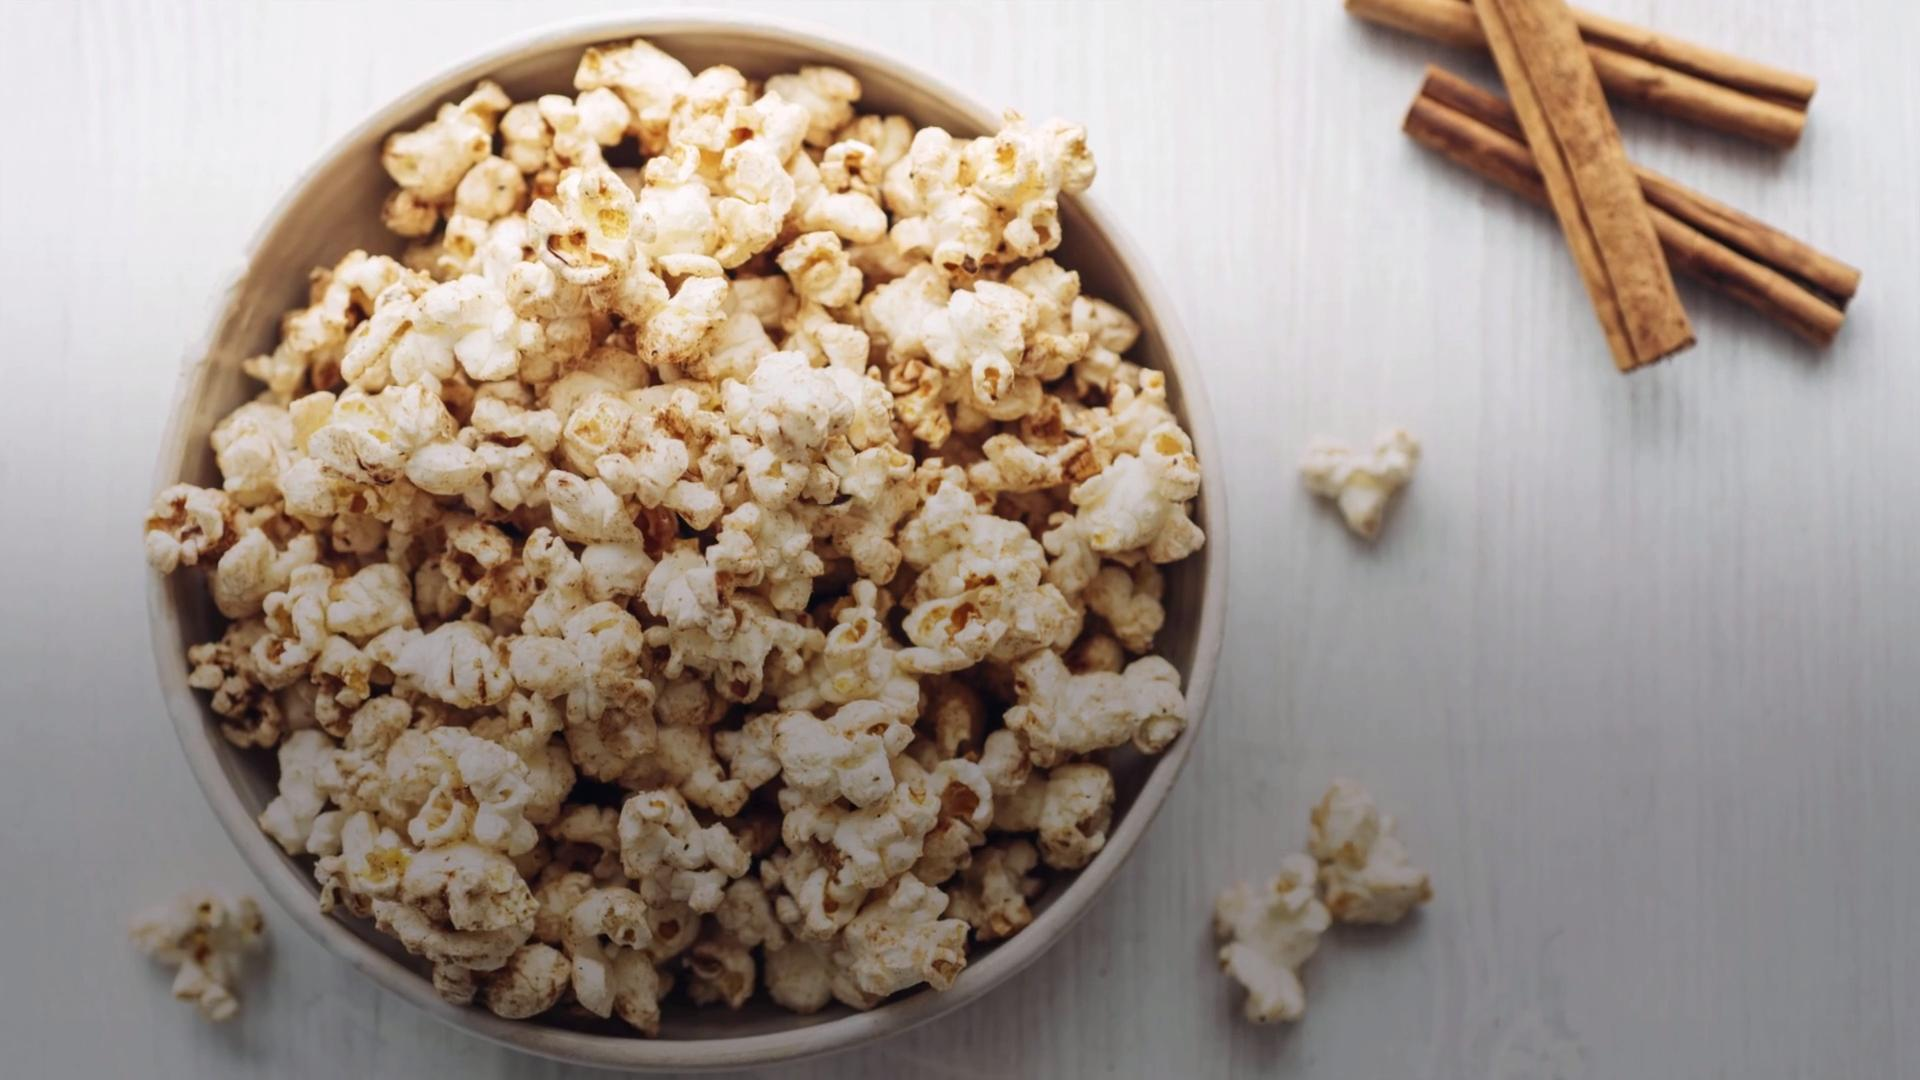 The Simplest Way to Make a Better Bowl of Popcorn